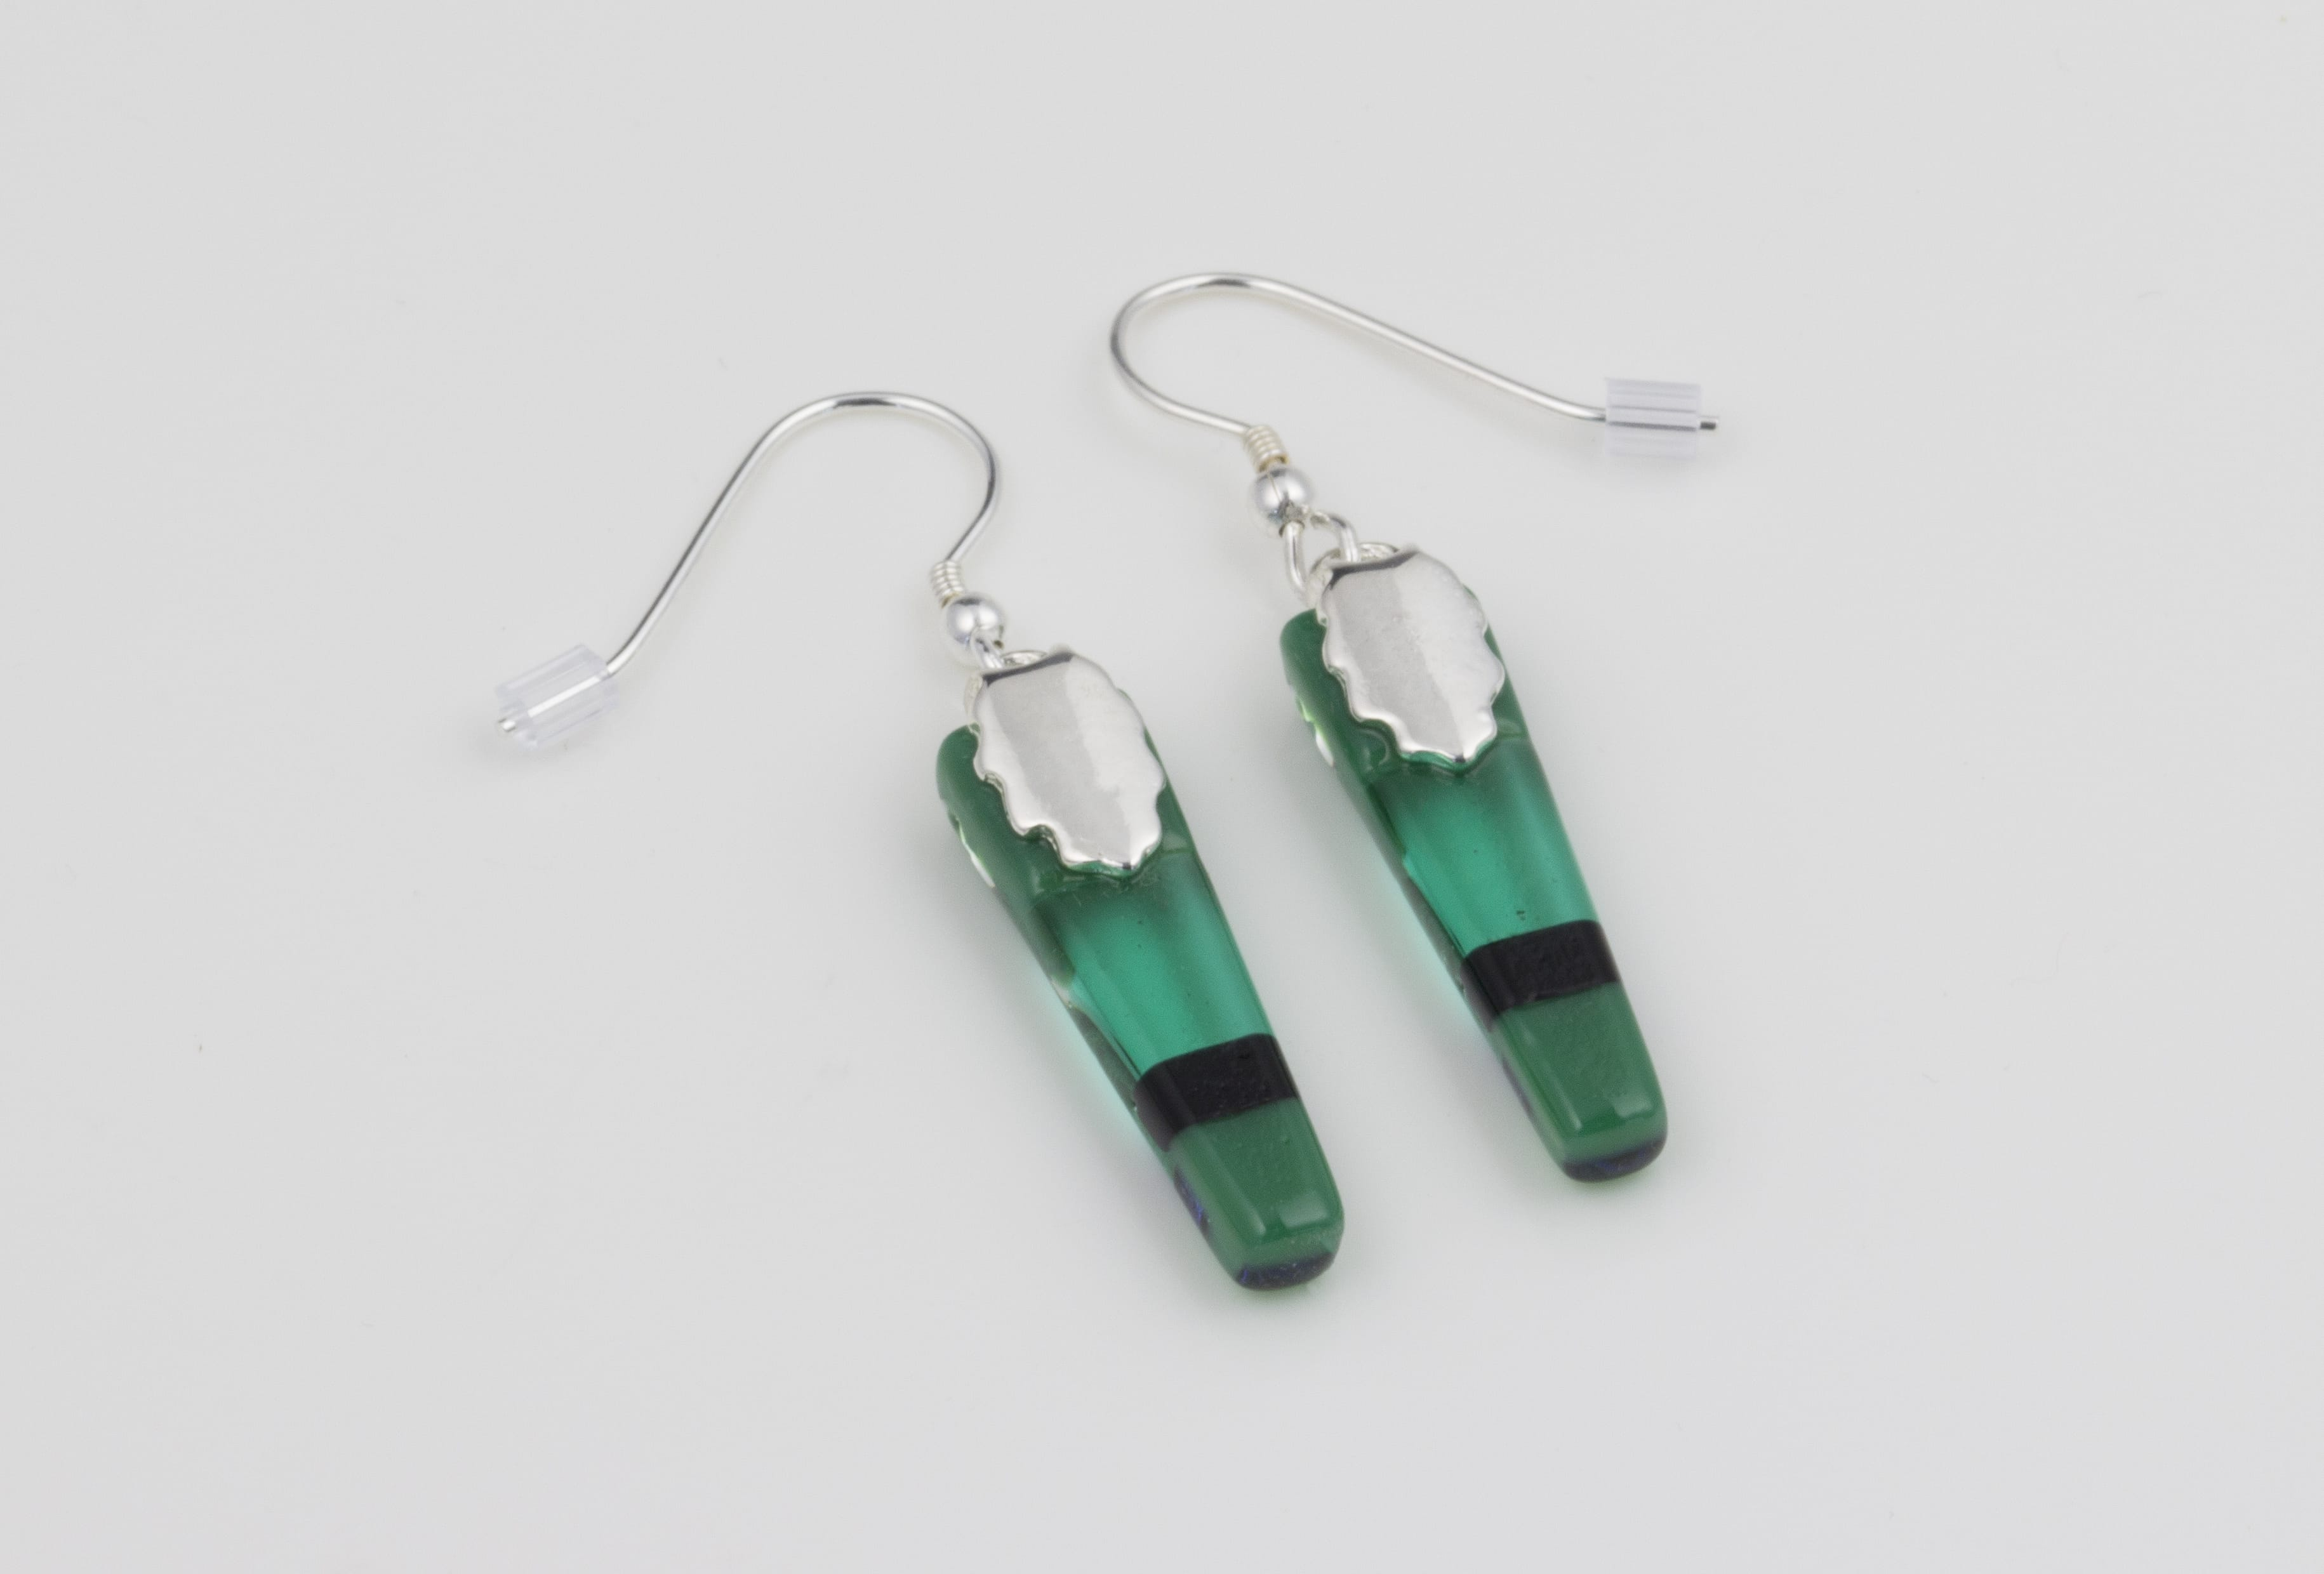 Dichroic glass jewellery, glass drop earrings, tapered green earrings with transparent, opaque and dichroic glass, art glass earrings handmade in Shropshire, sterling silver hooks